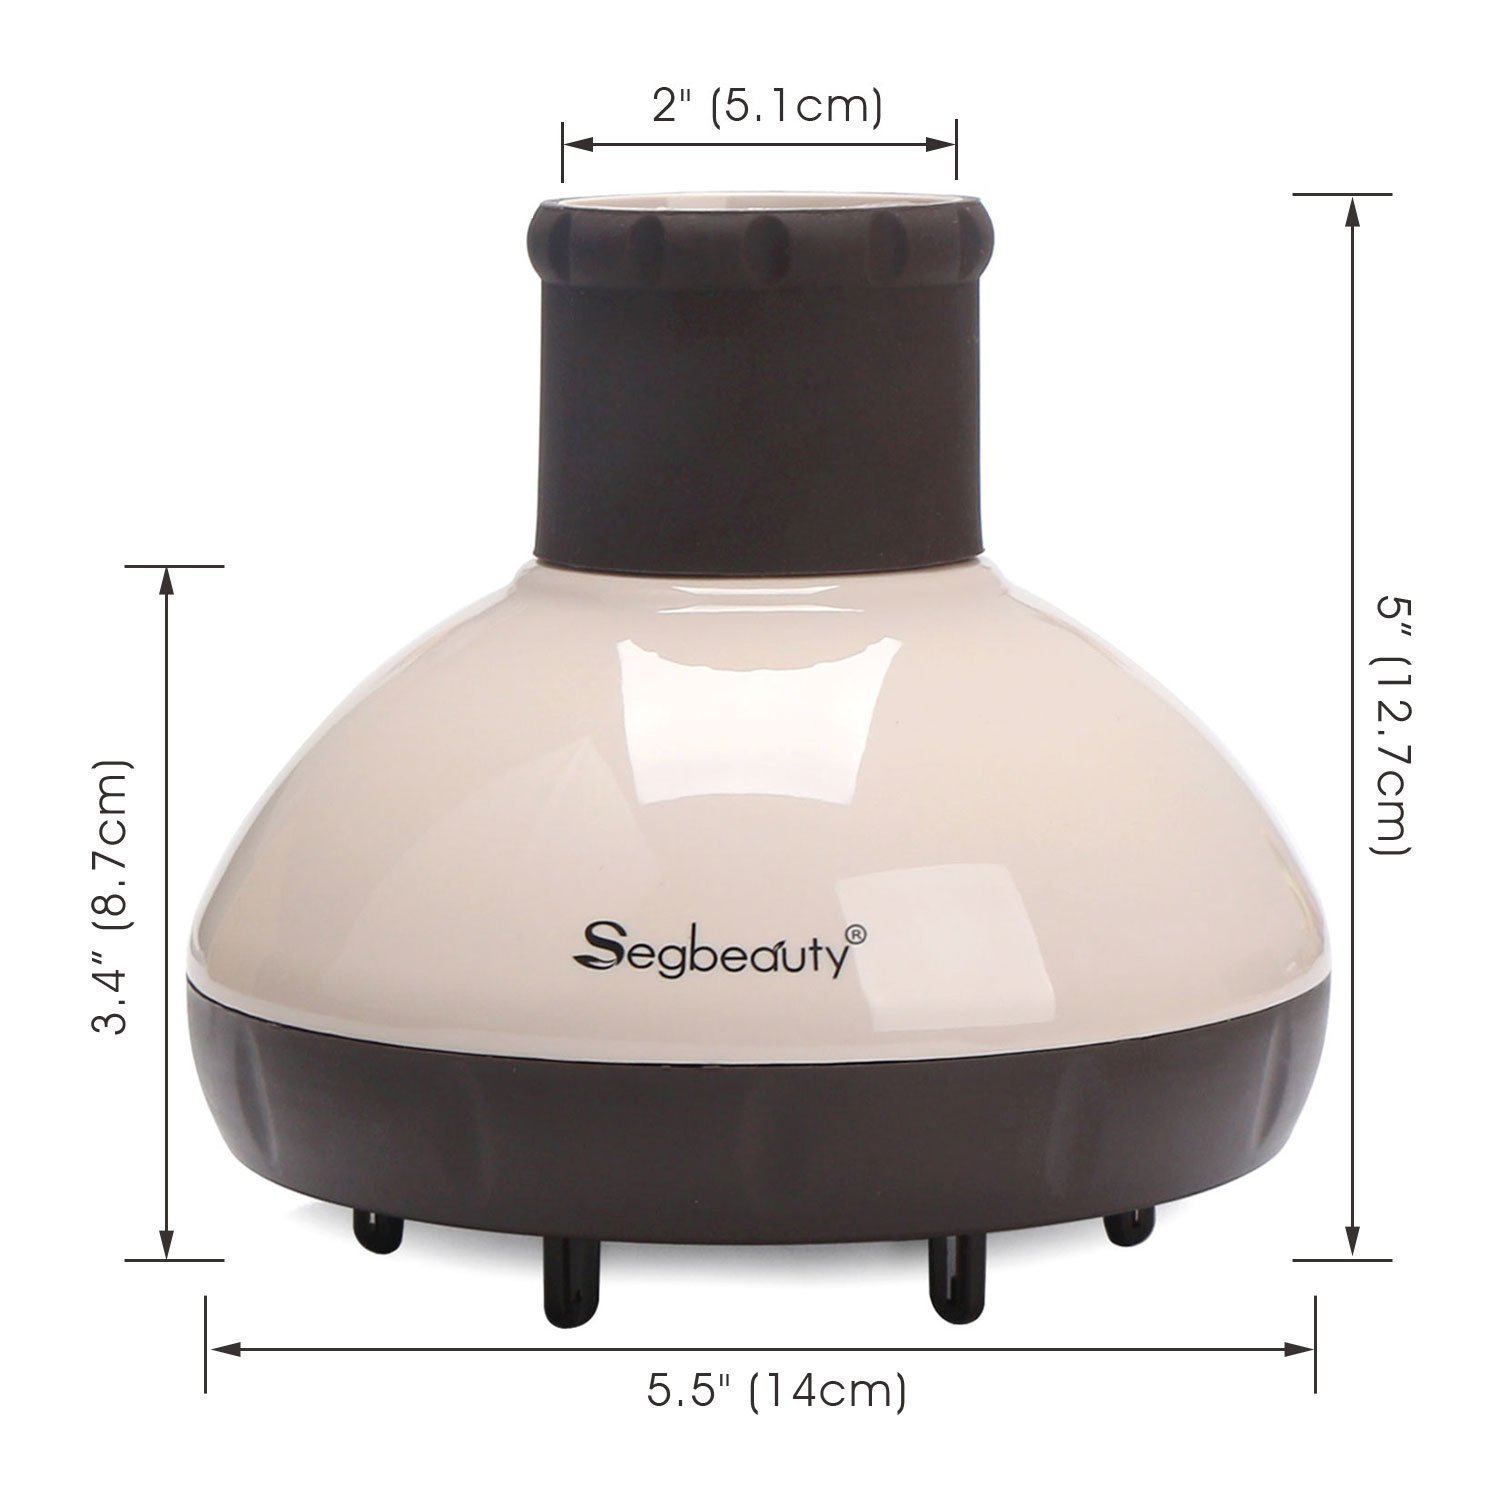 Hair Diffuser, Segbeauty Hair Blow Dryer Diffuser Attachment Professional Salon Tool for Fine Thick Curly Frizzy and Wavy Hair, Dry and Gain Volume Without Frizz, for Dryer Nozzle 1.6-1.8'' by Segbeauty (Image #7)